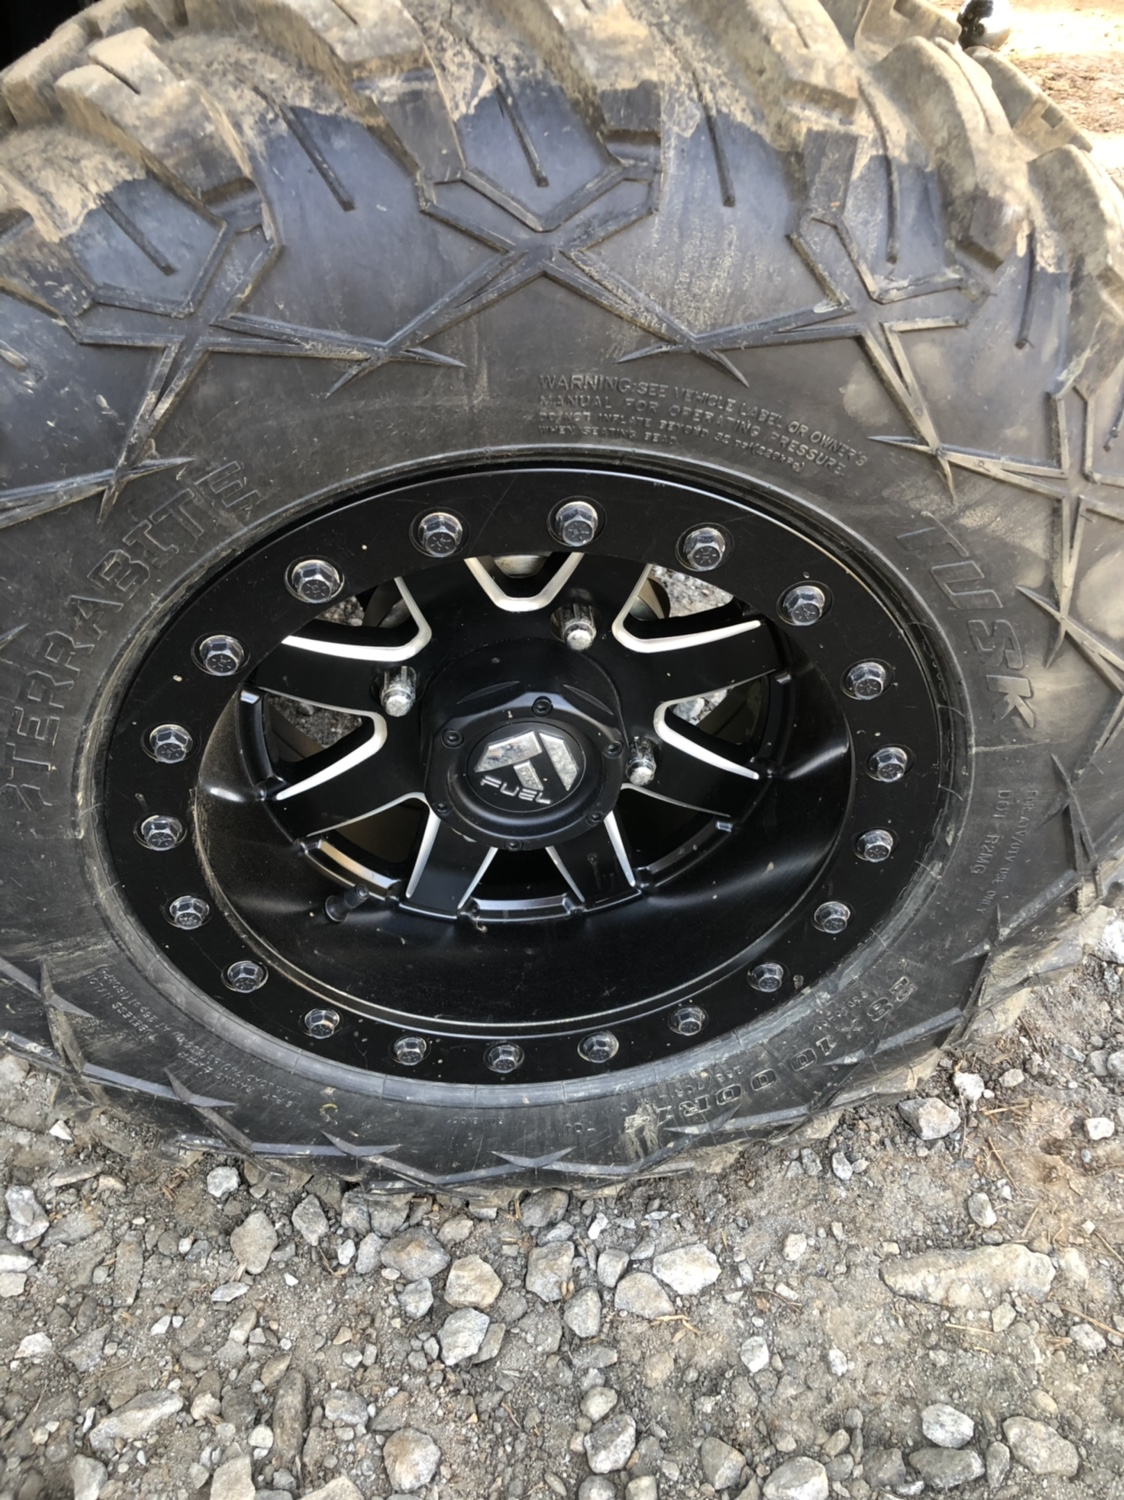 Aftermarket wheels and tires for Teryx.-img_2726.jpg